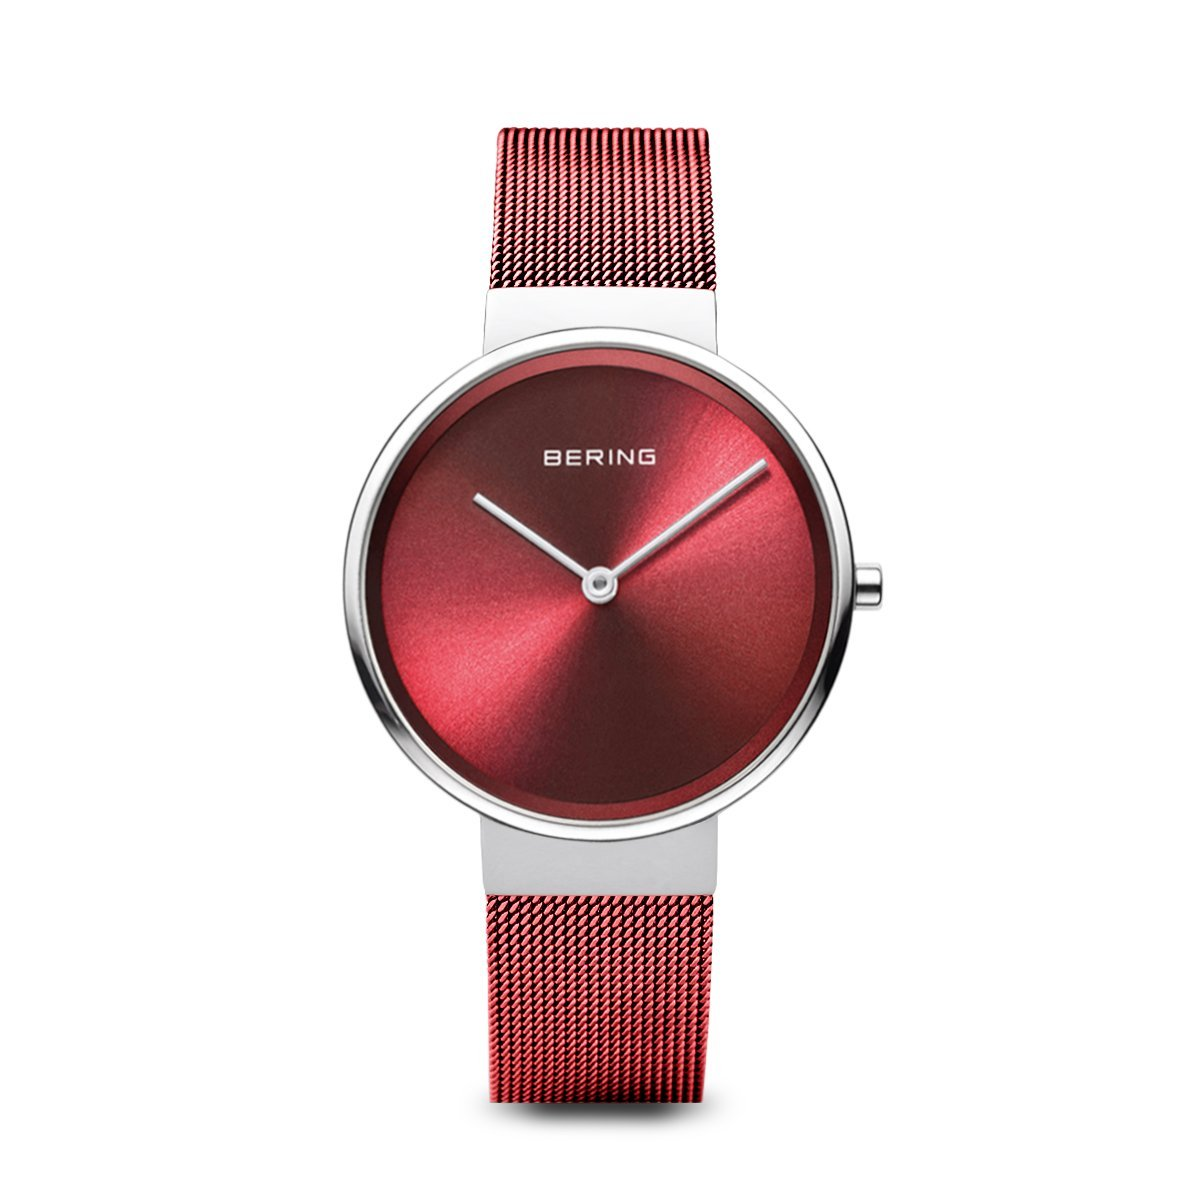 Ladies Bering watch with deep red mesh strap and red minimalist dial